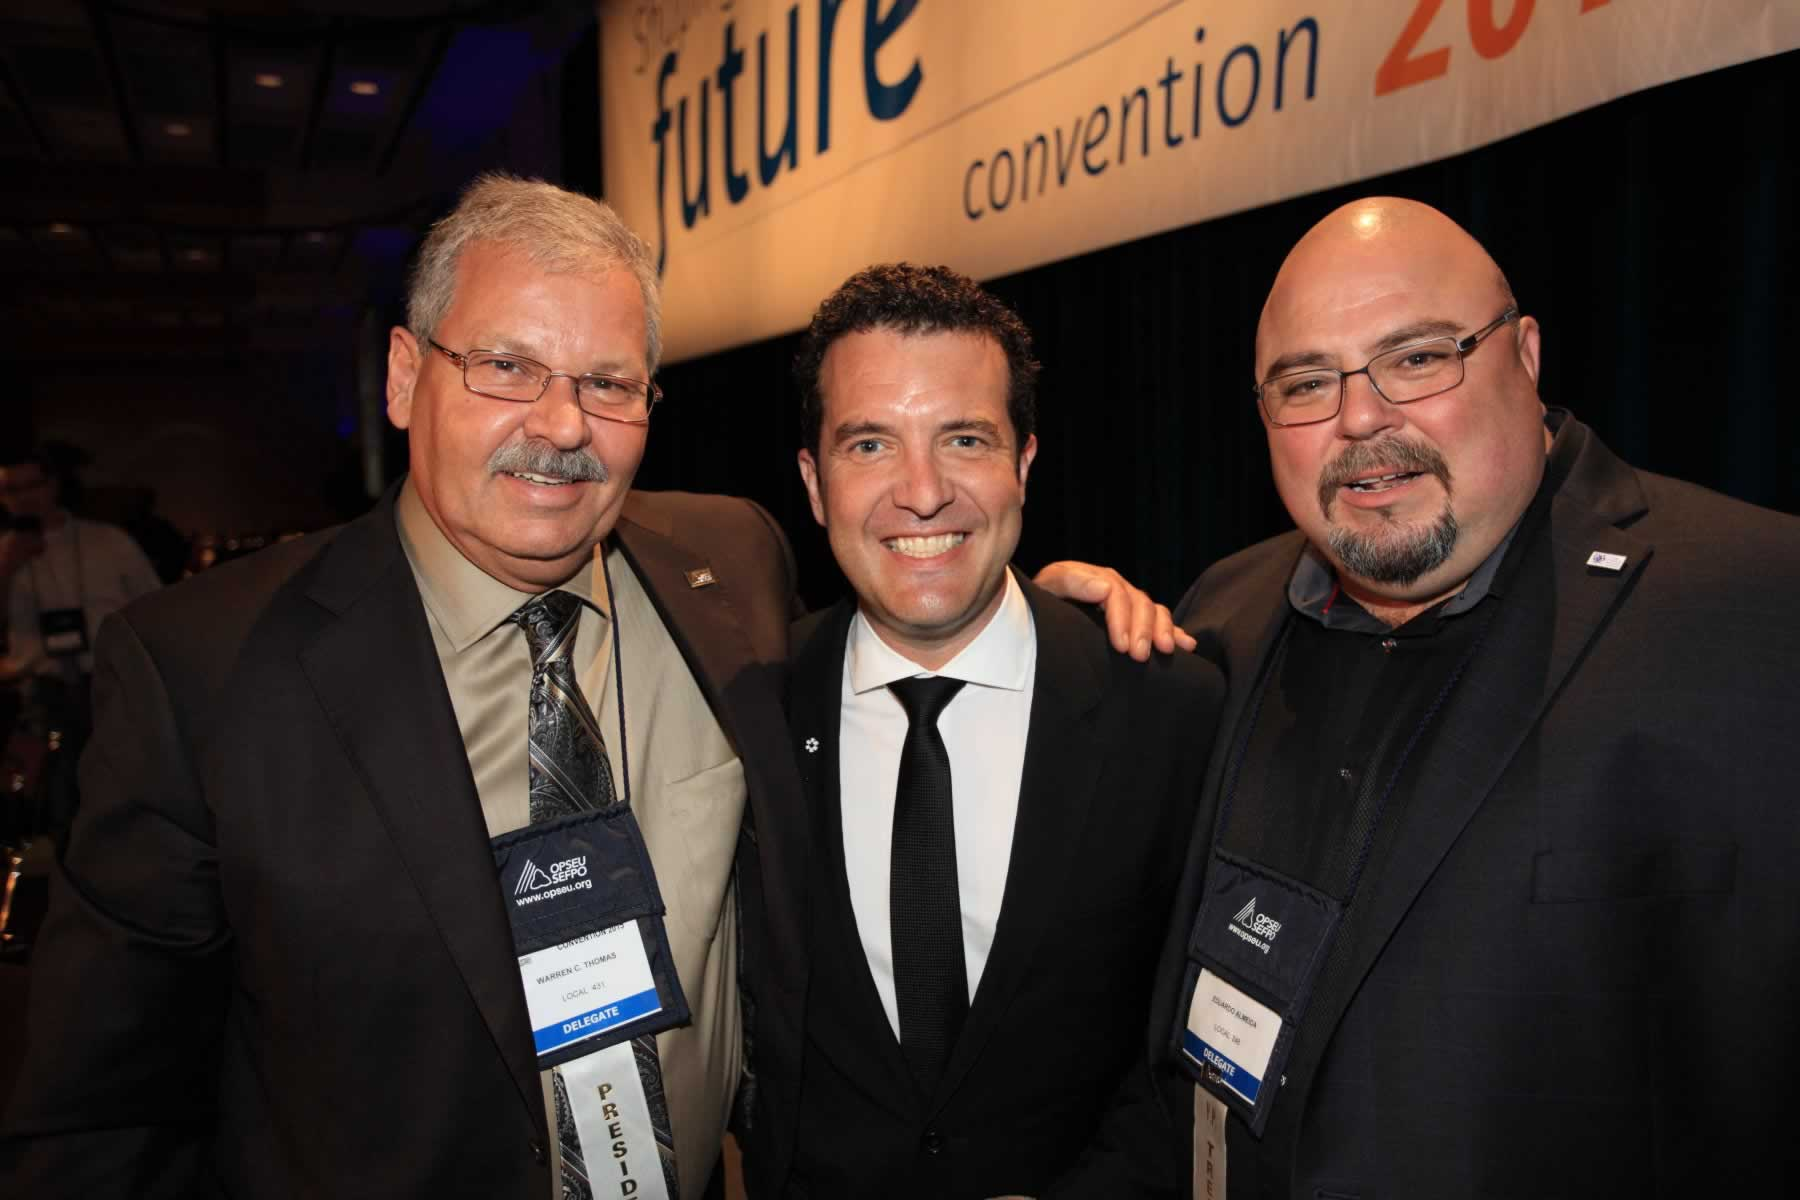 OPSEU President Warren (Smokey) Thomas and First Vice-President/Treasurer Eduardo (Eddy) Almeida with Rick Mercer during Convention 2015